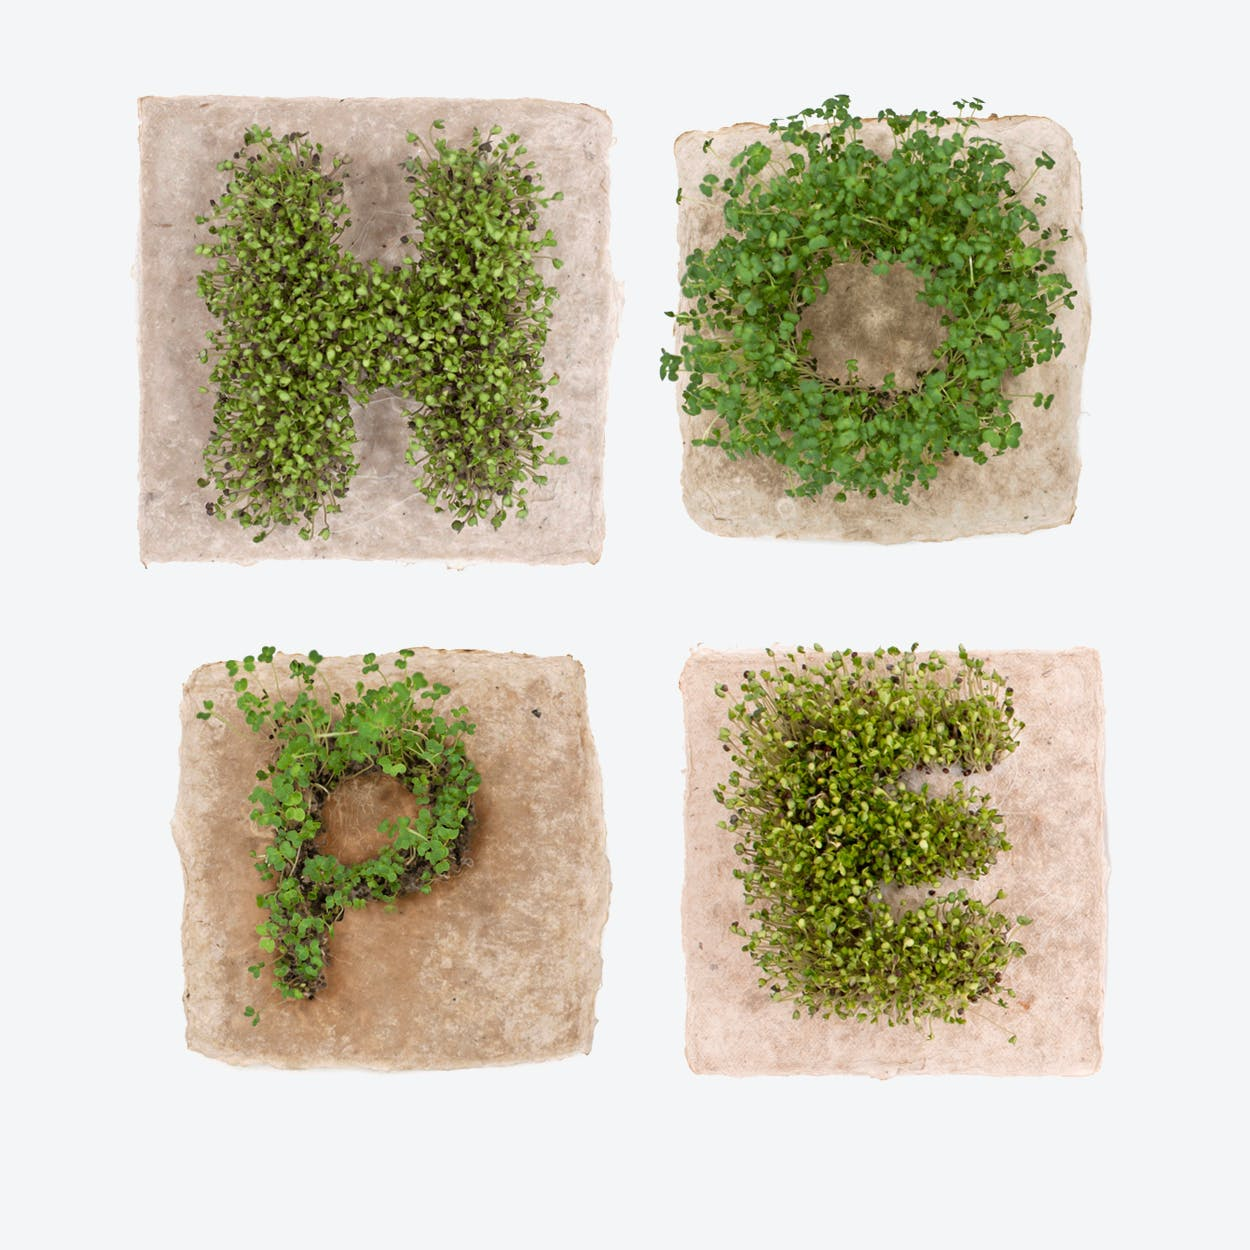 Plant Growing Paper (HOPE)